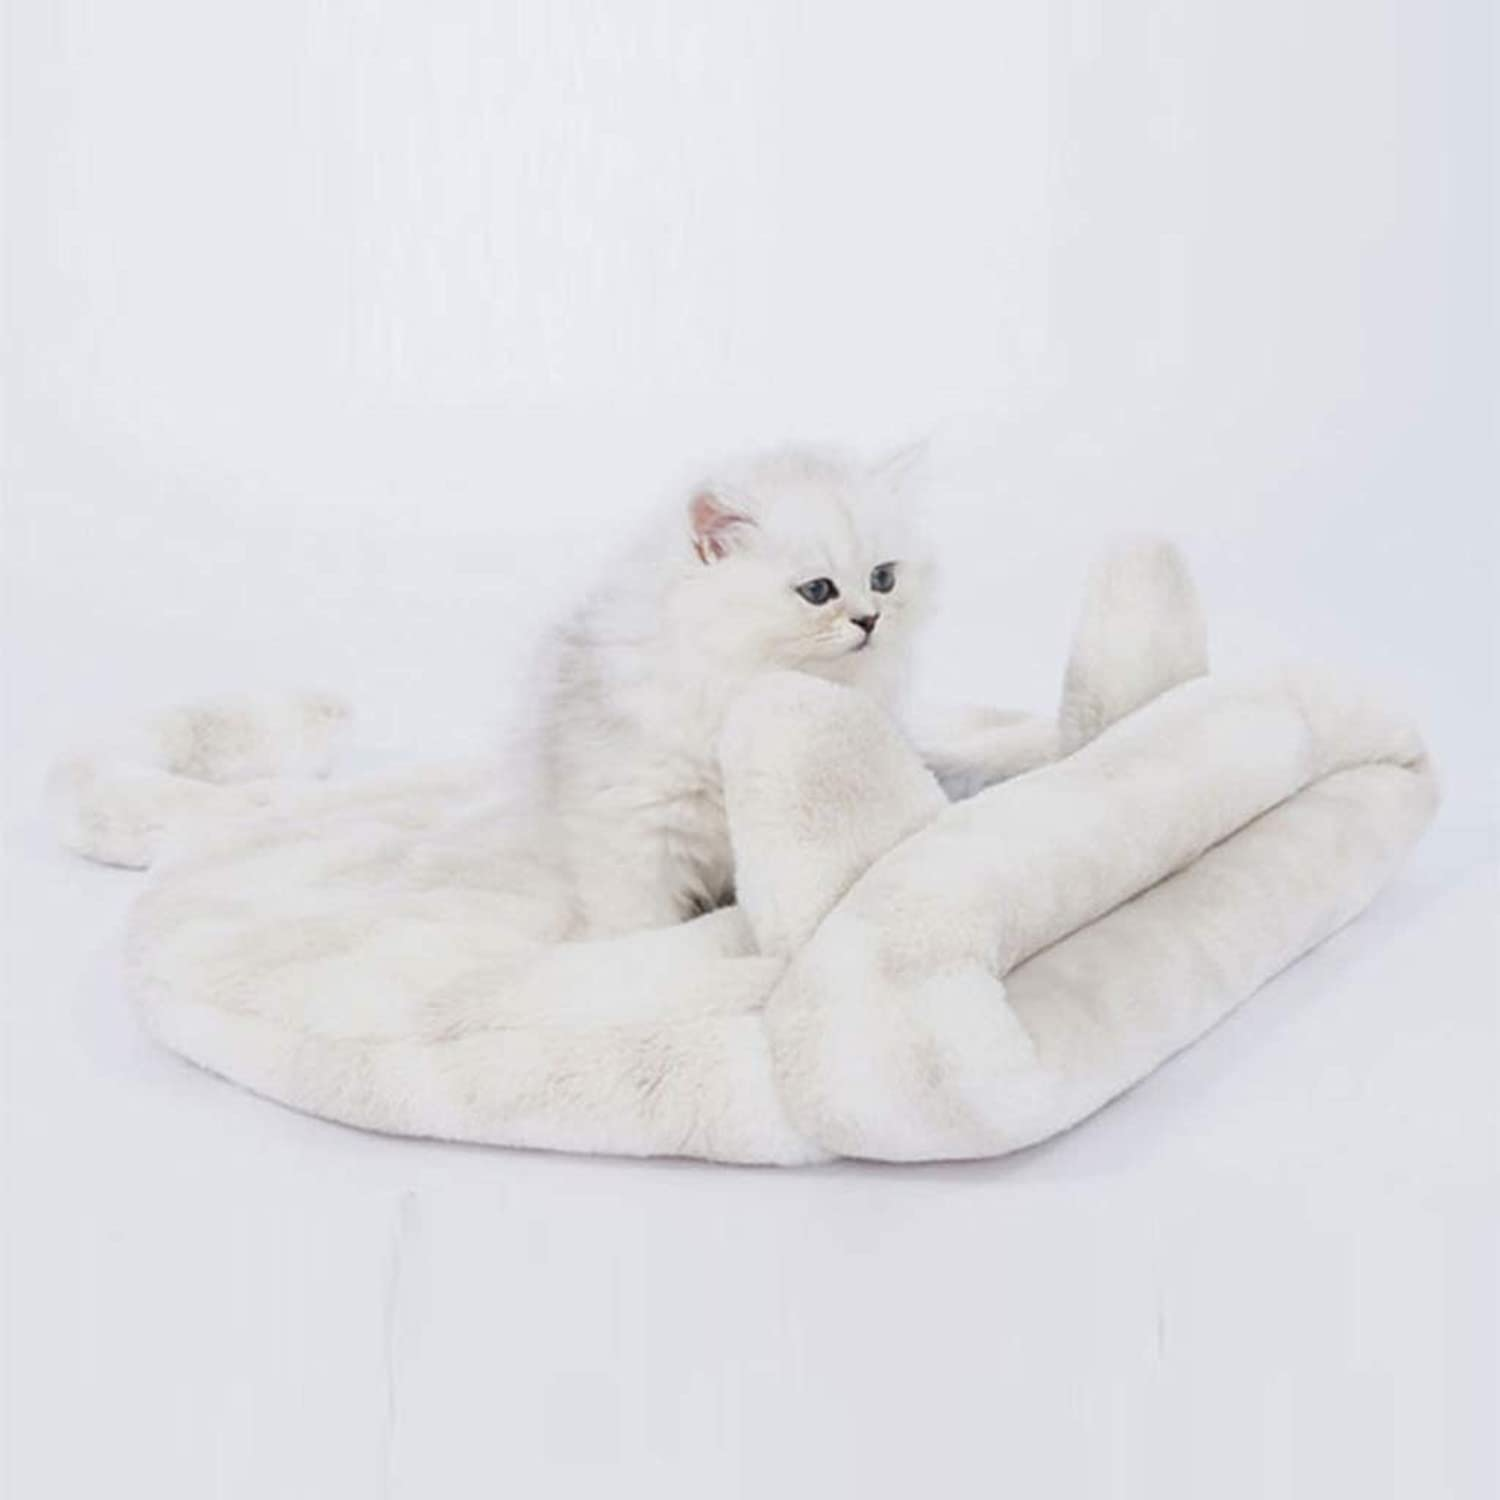 Cat Litter Winter Warm Closed Cat Sleeping Bag Washable Design Thick Soft Comfortable Cat House, Two colors SMBYLL (color   Yellow)